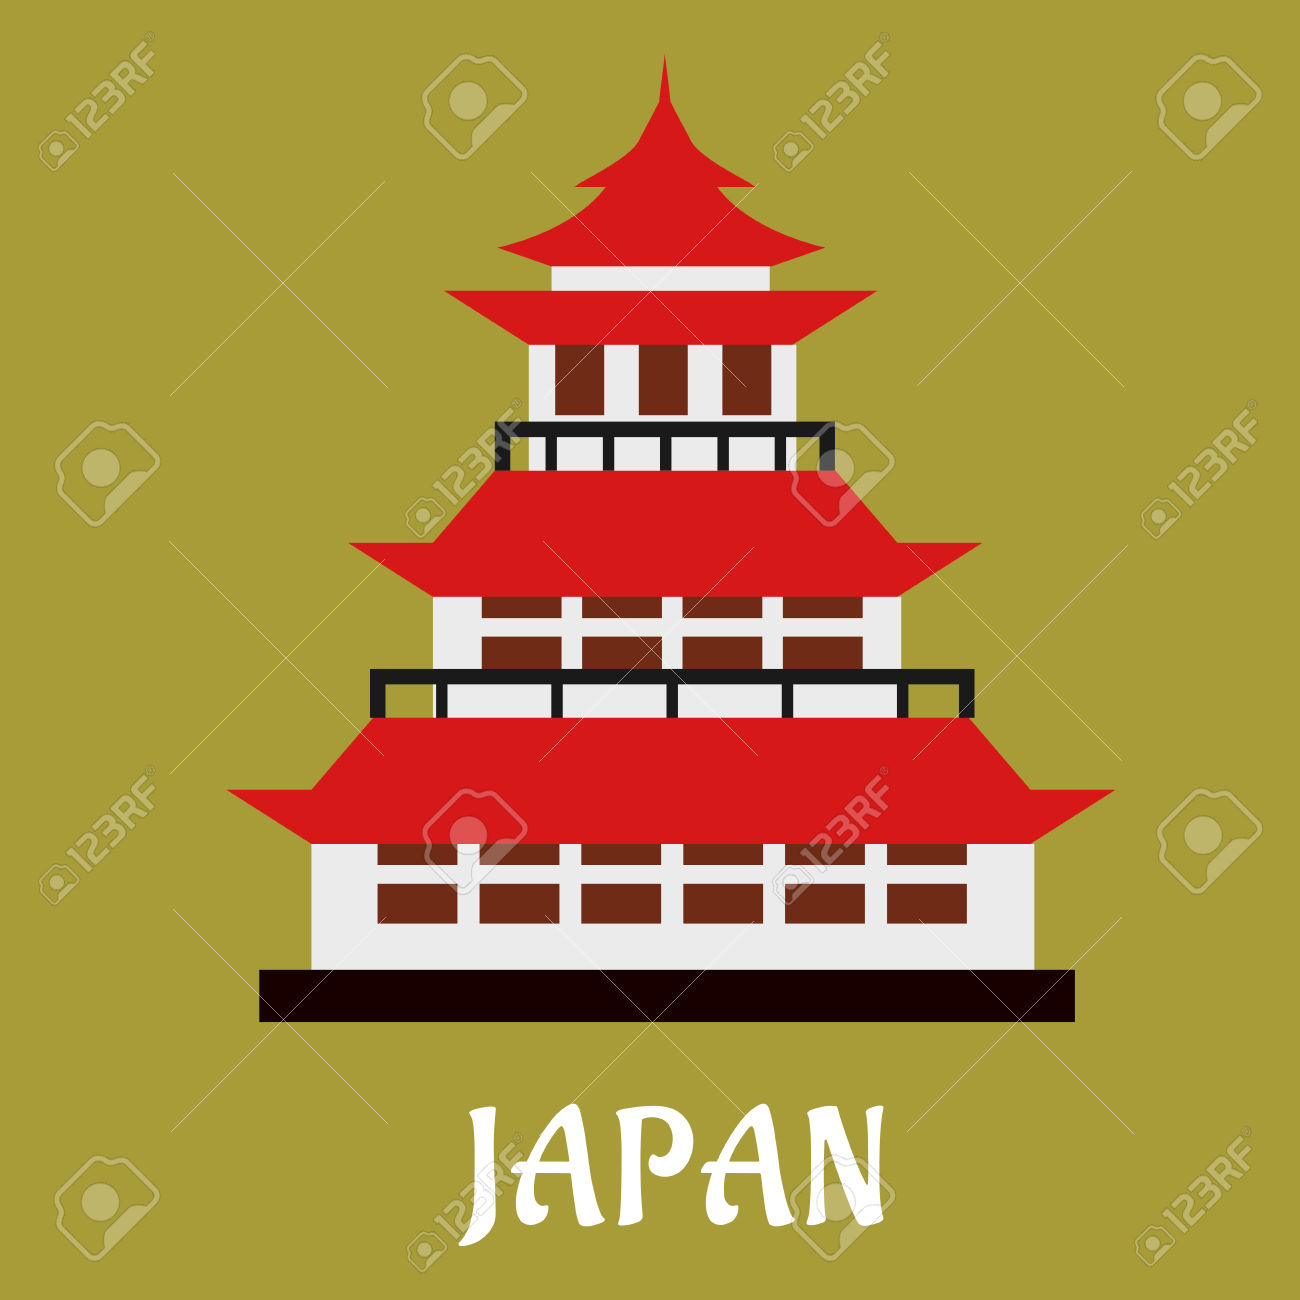 Japanese National Traditional Pagoda With Red Roof And Ornamental.